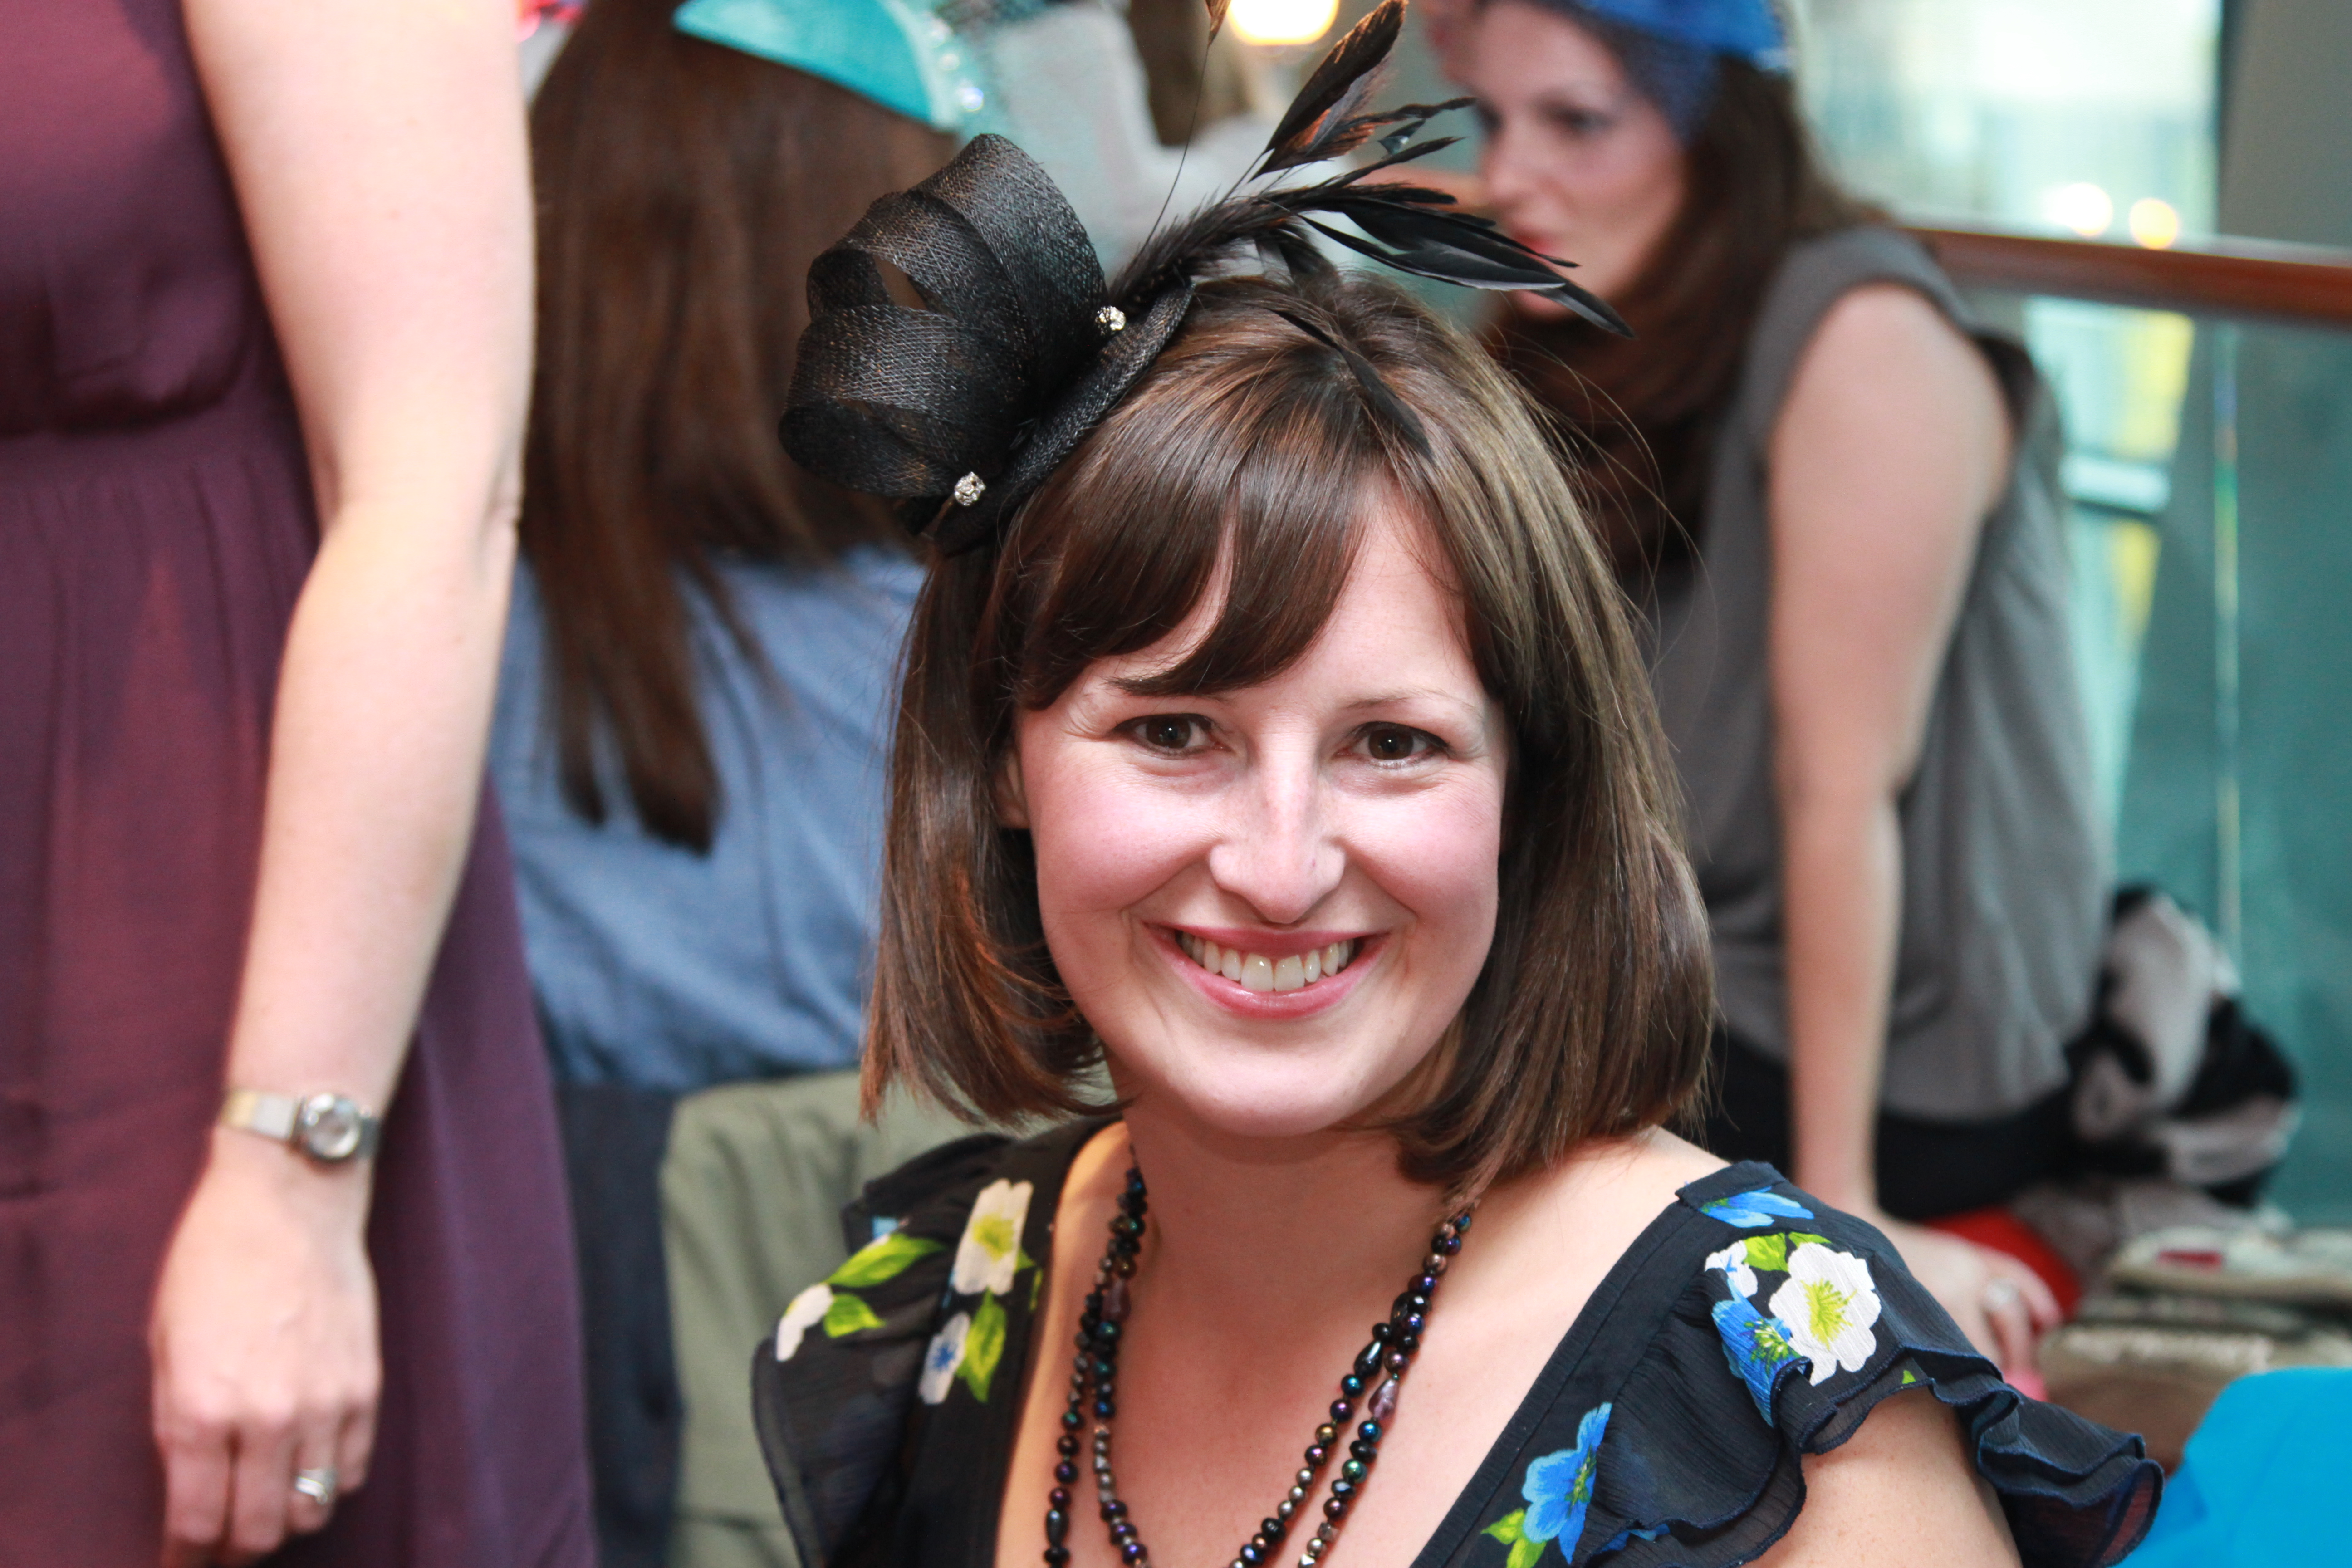 New venue for fabulous fascinator making classes – perfect hen party idea!